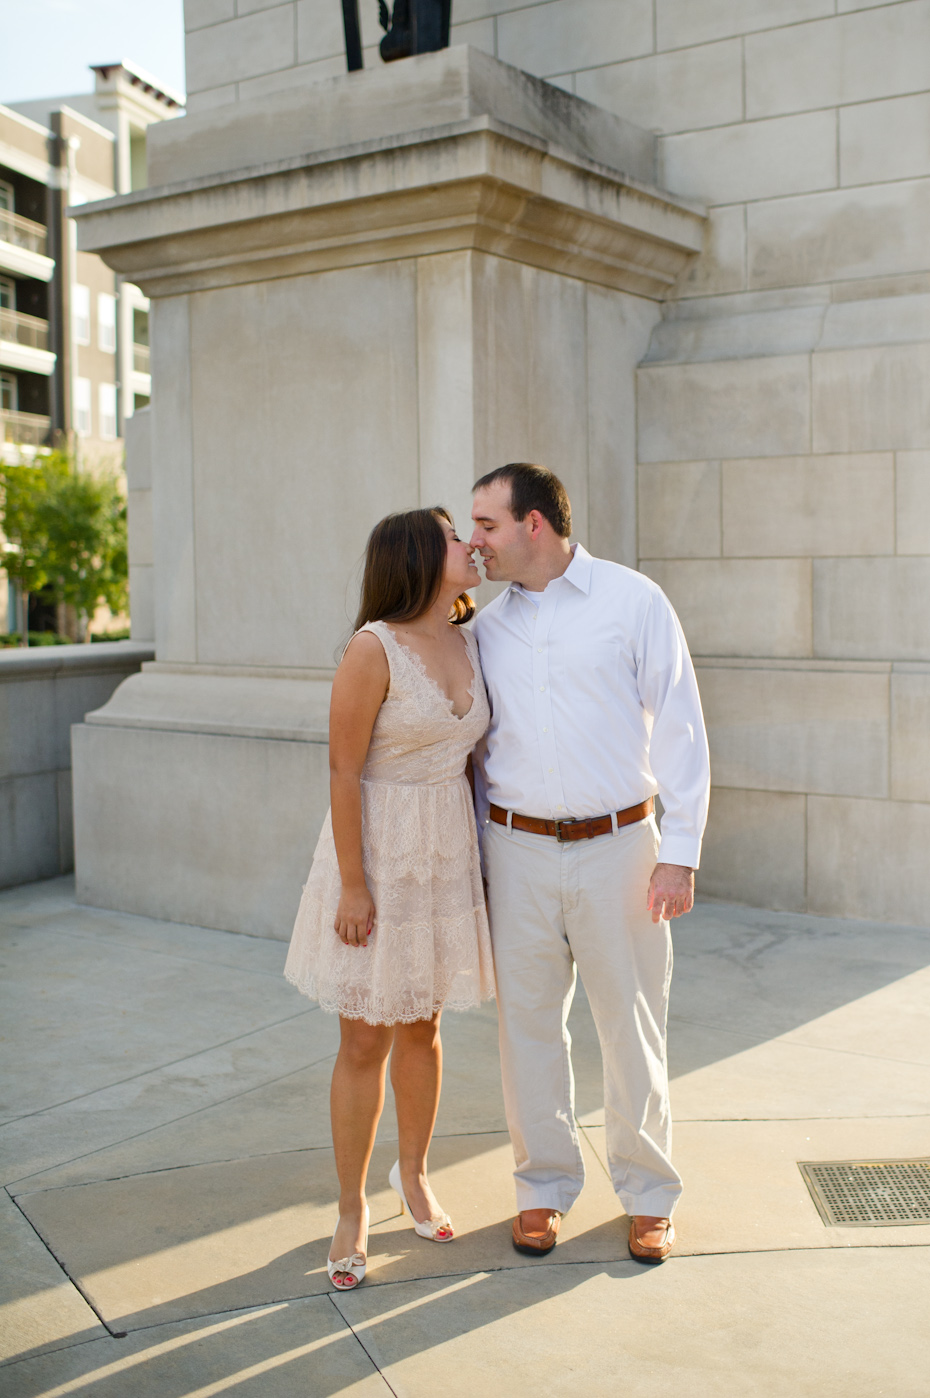 Good places to take engagement pictures in Atlanta